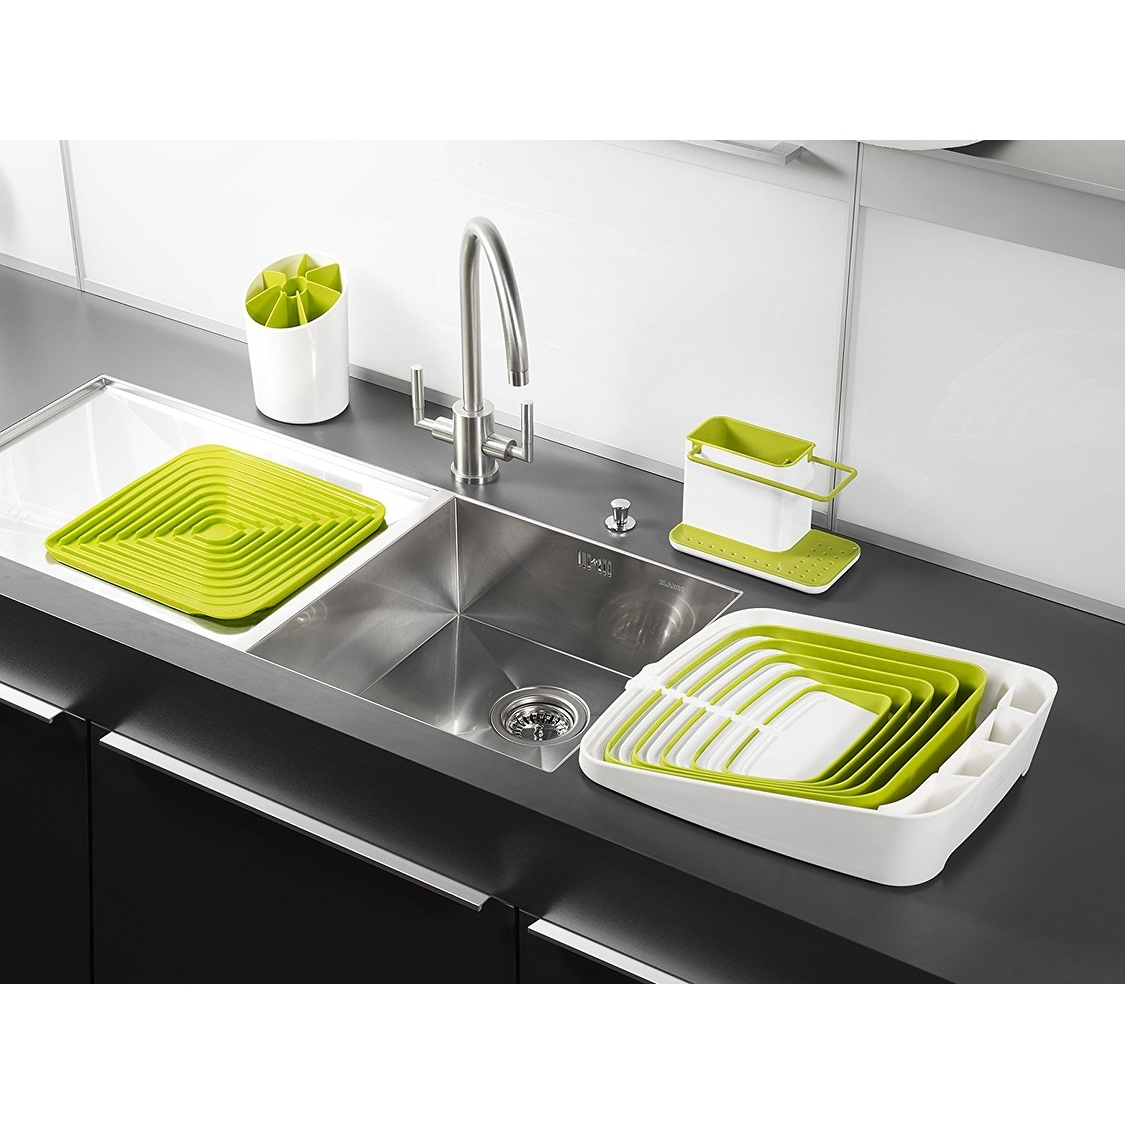 Joseph Sink Caddy Kitchen Organizer Holder Green White On Free Shipping Orders Over 45 17817375